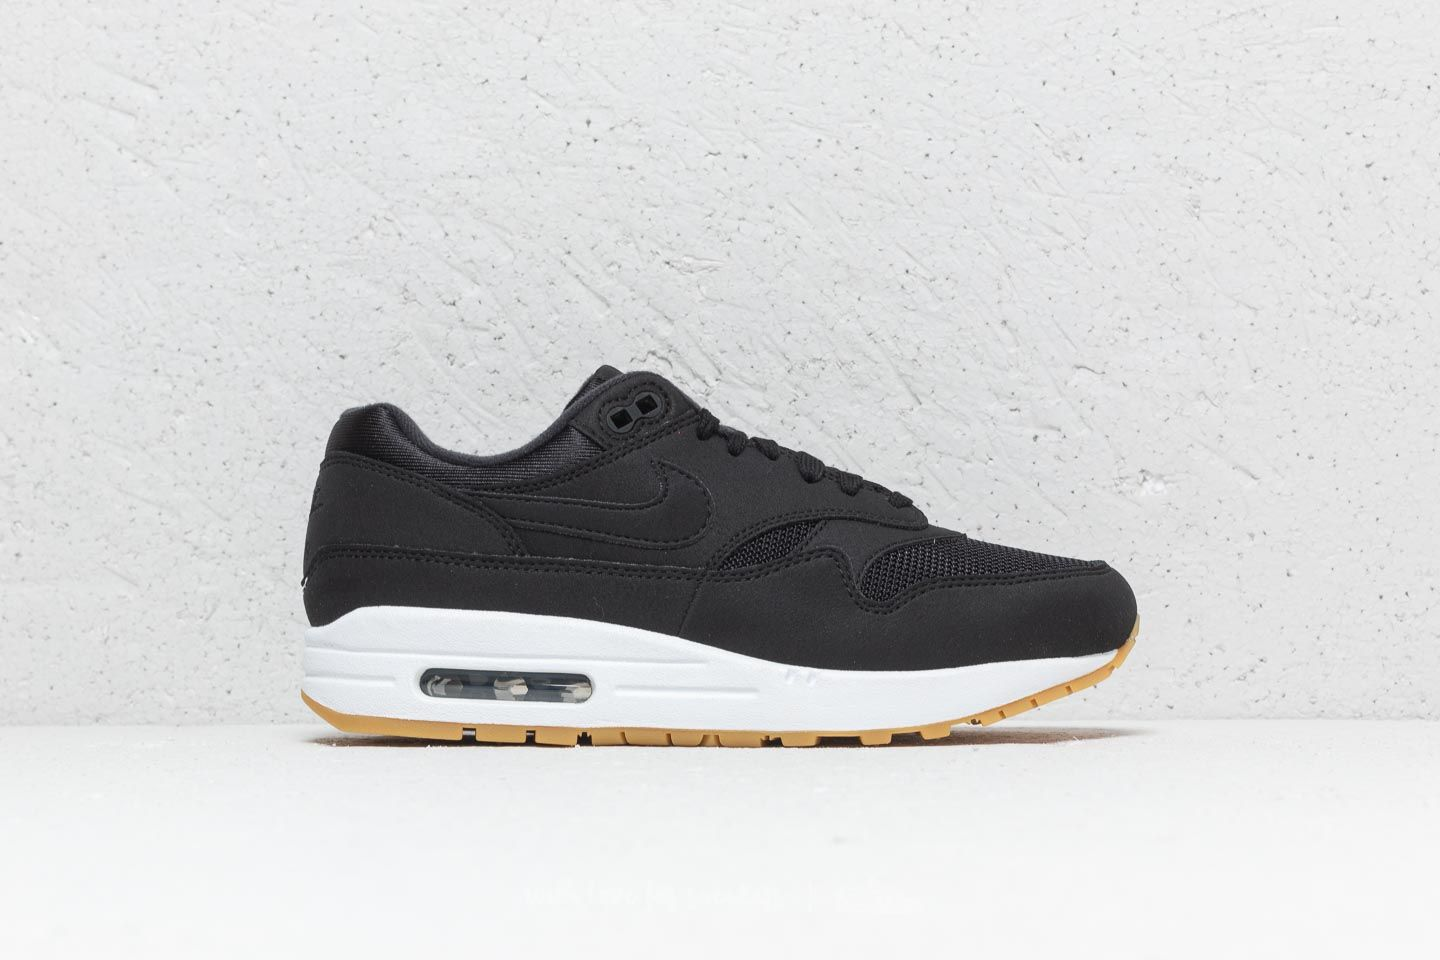 buy online 5e2a6 7543d Nike Wmns Air Max 1 Black  Black-Gum Light Brown at a great price